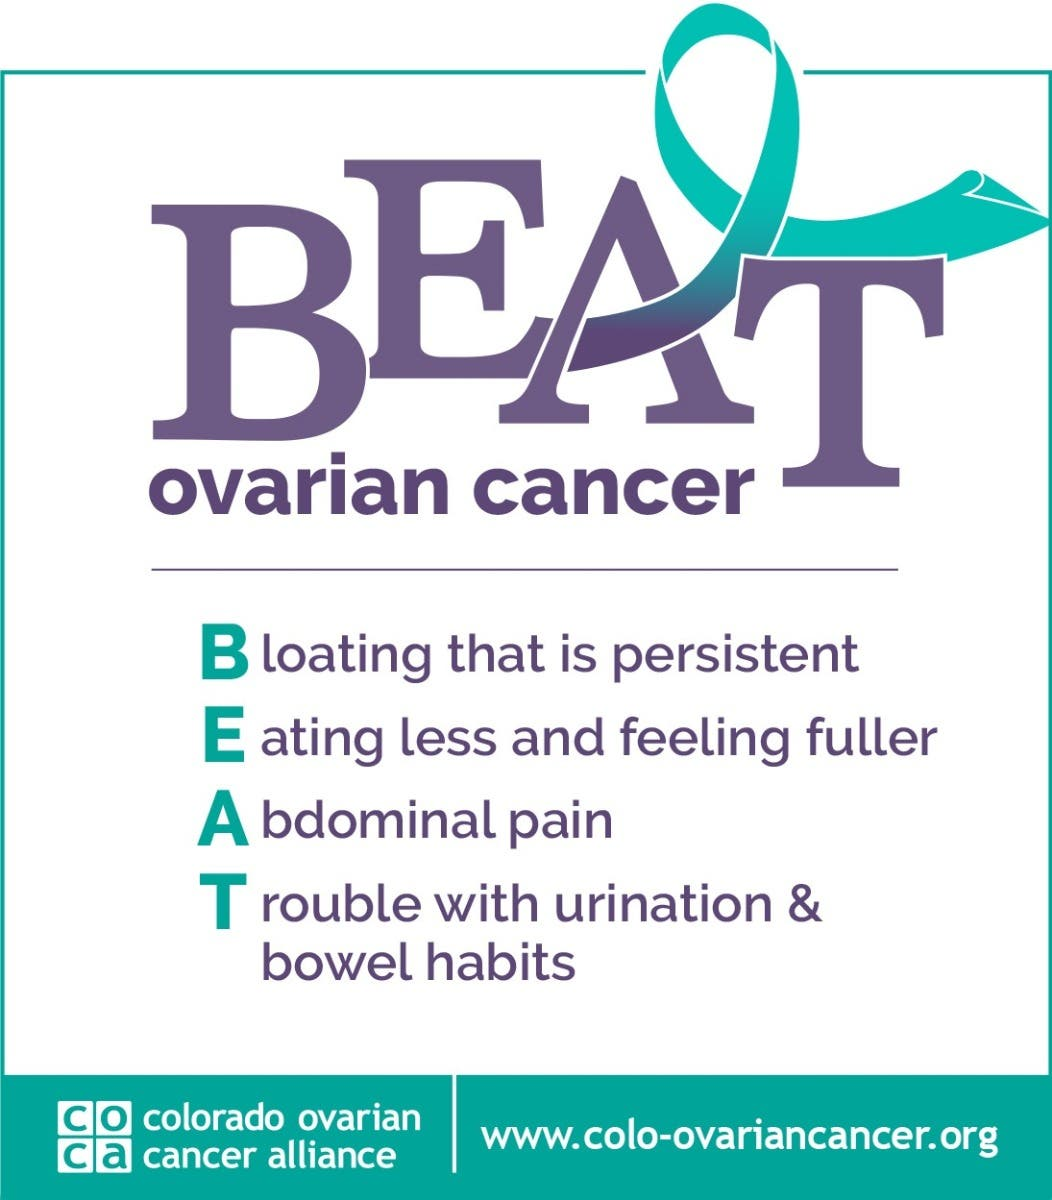 Sep 9 Wear Teal Day To Raise Awareness Of Ovarian Cancer Denver Co Patch